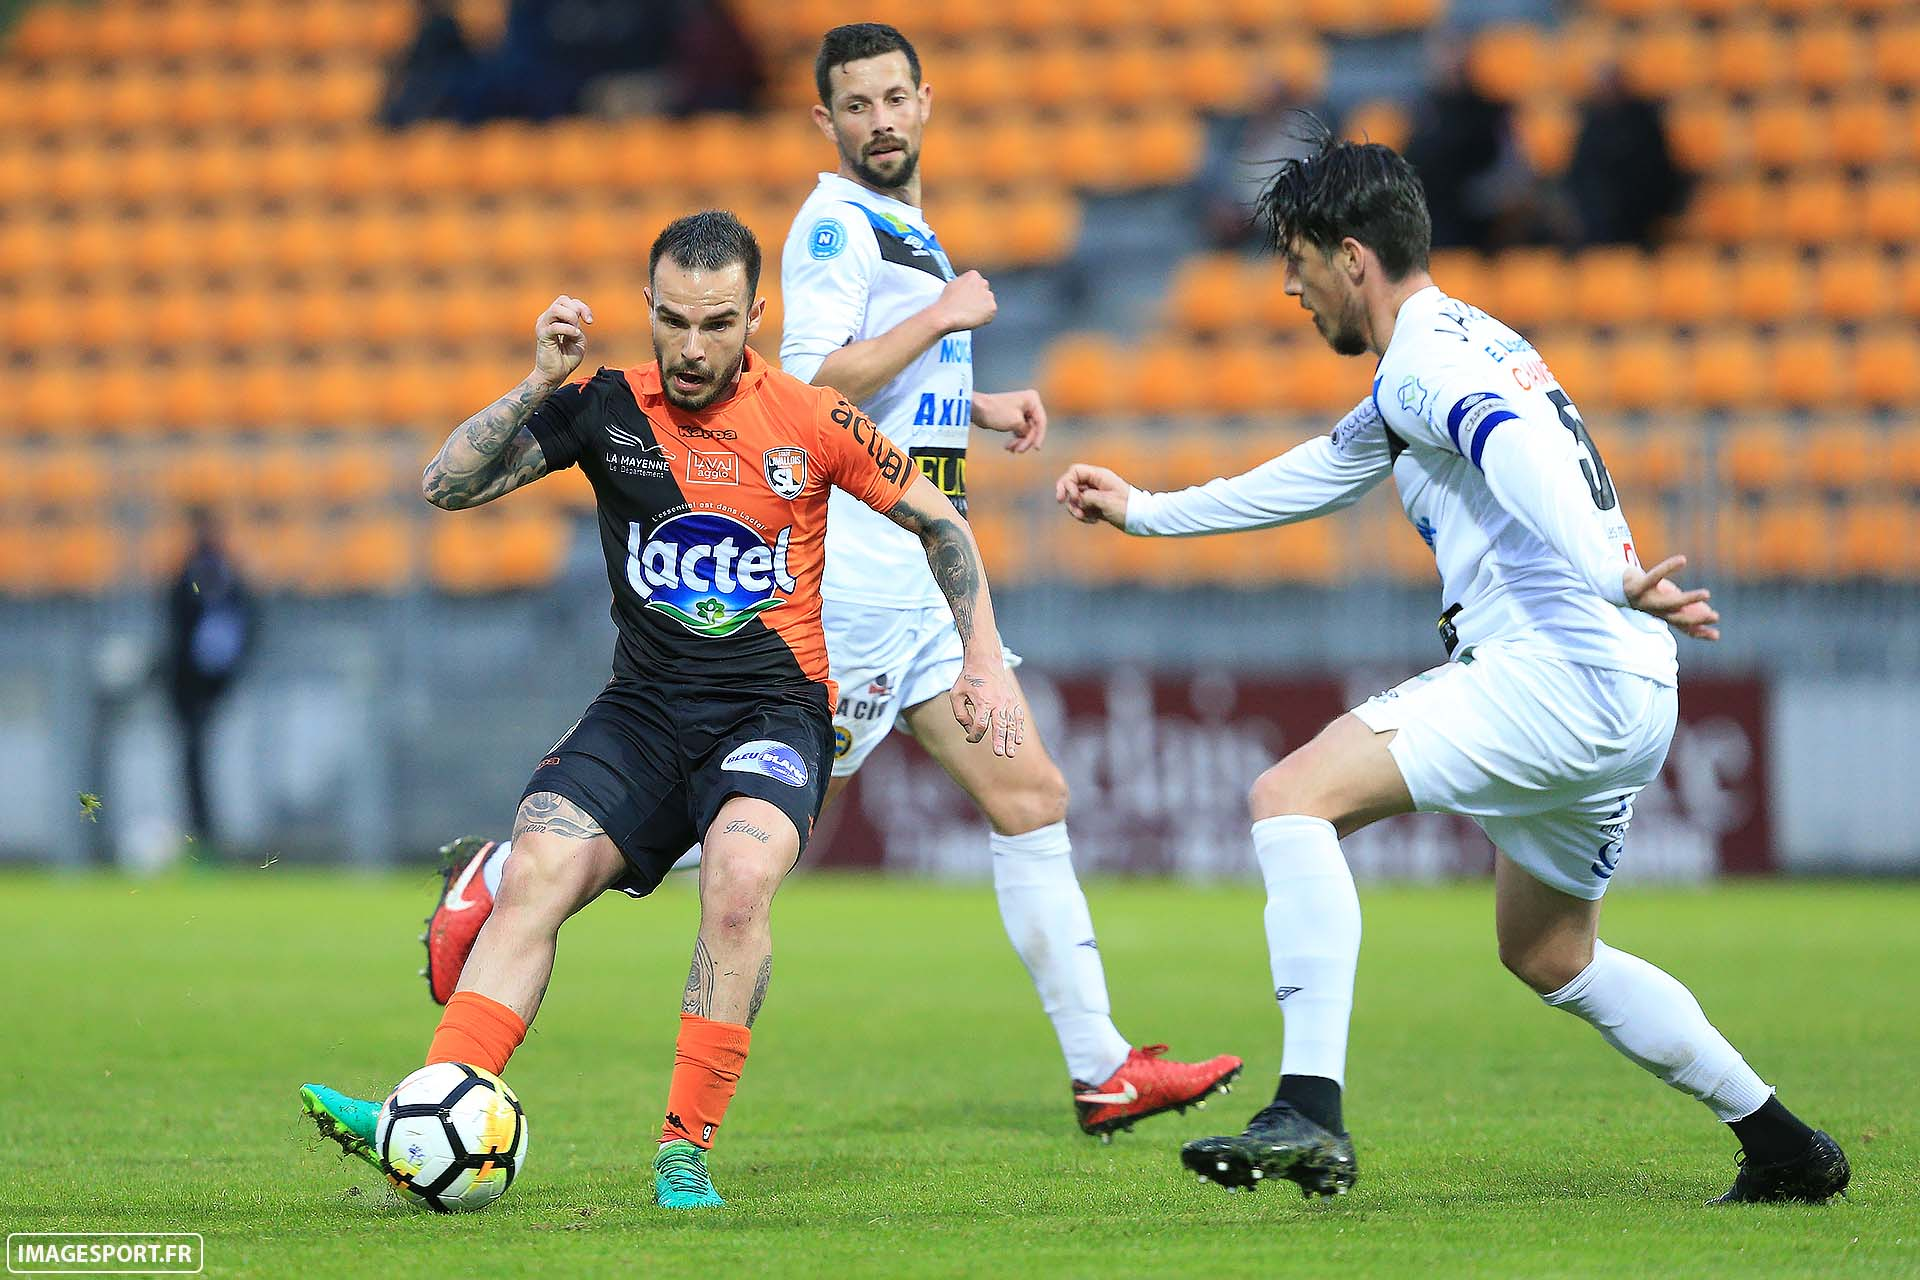 Alexy BOSETTI (Stade Lavallois) / Thibault JAQUES (FC Chabmly Oise)